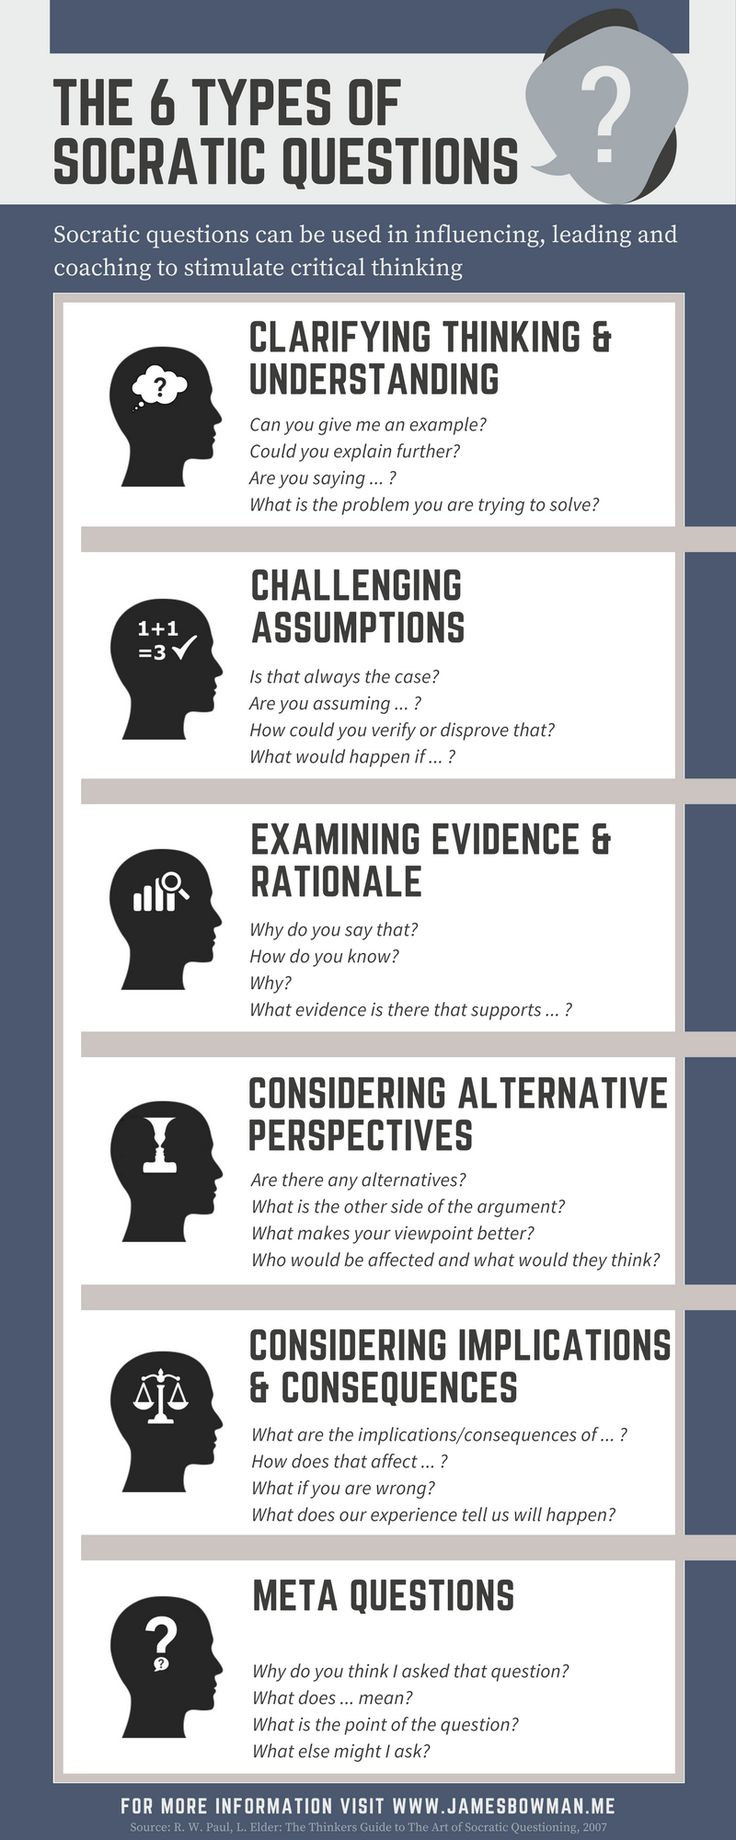 The Ultimate Guide for Improving Your Critical Thinking Skills SkillsHub    Consider